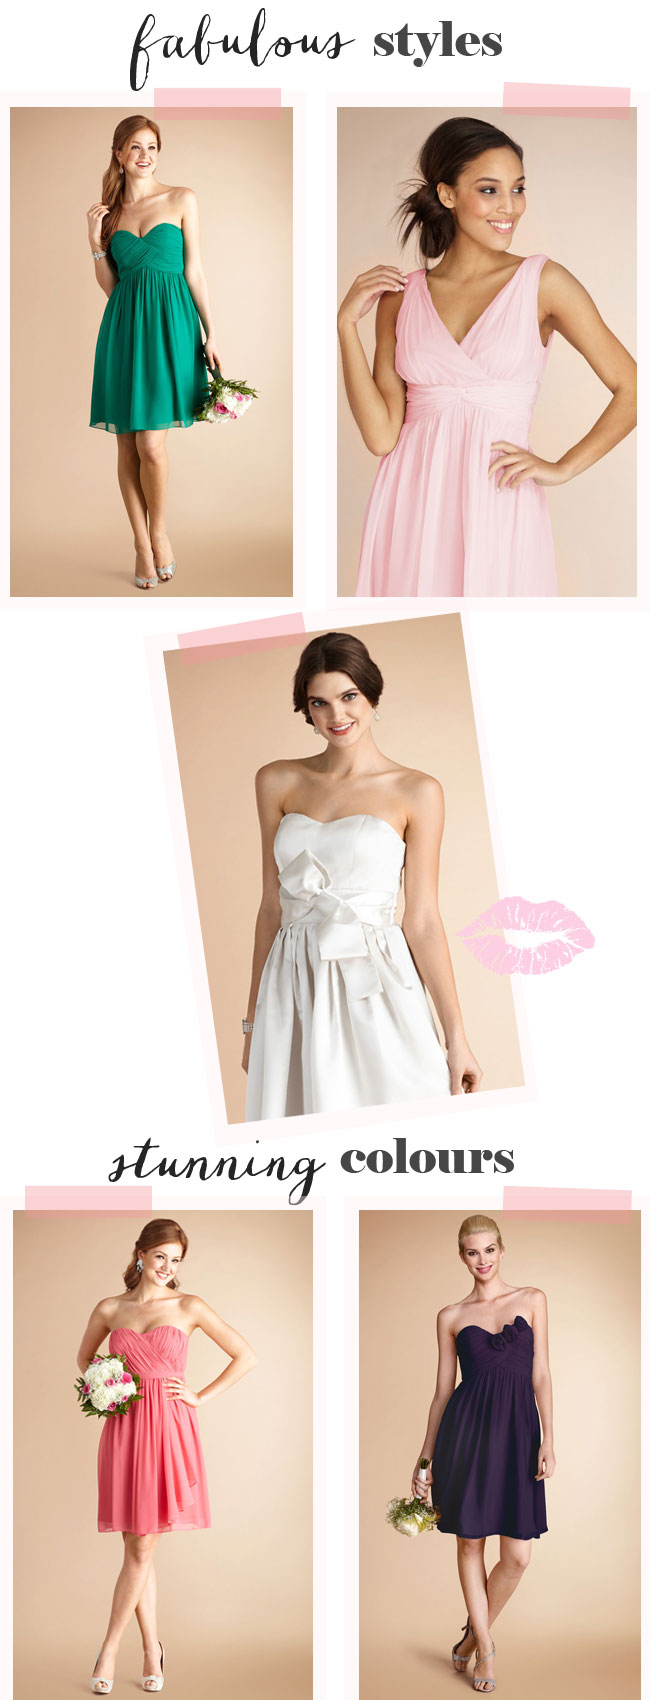 Short Bridesmaid Dresses 2014 from Bridesmaiddressesbuy